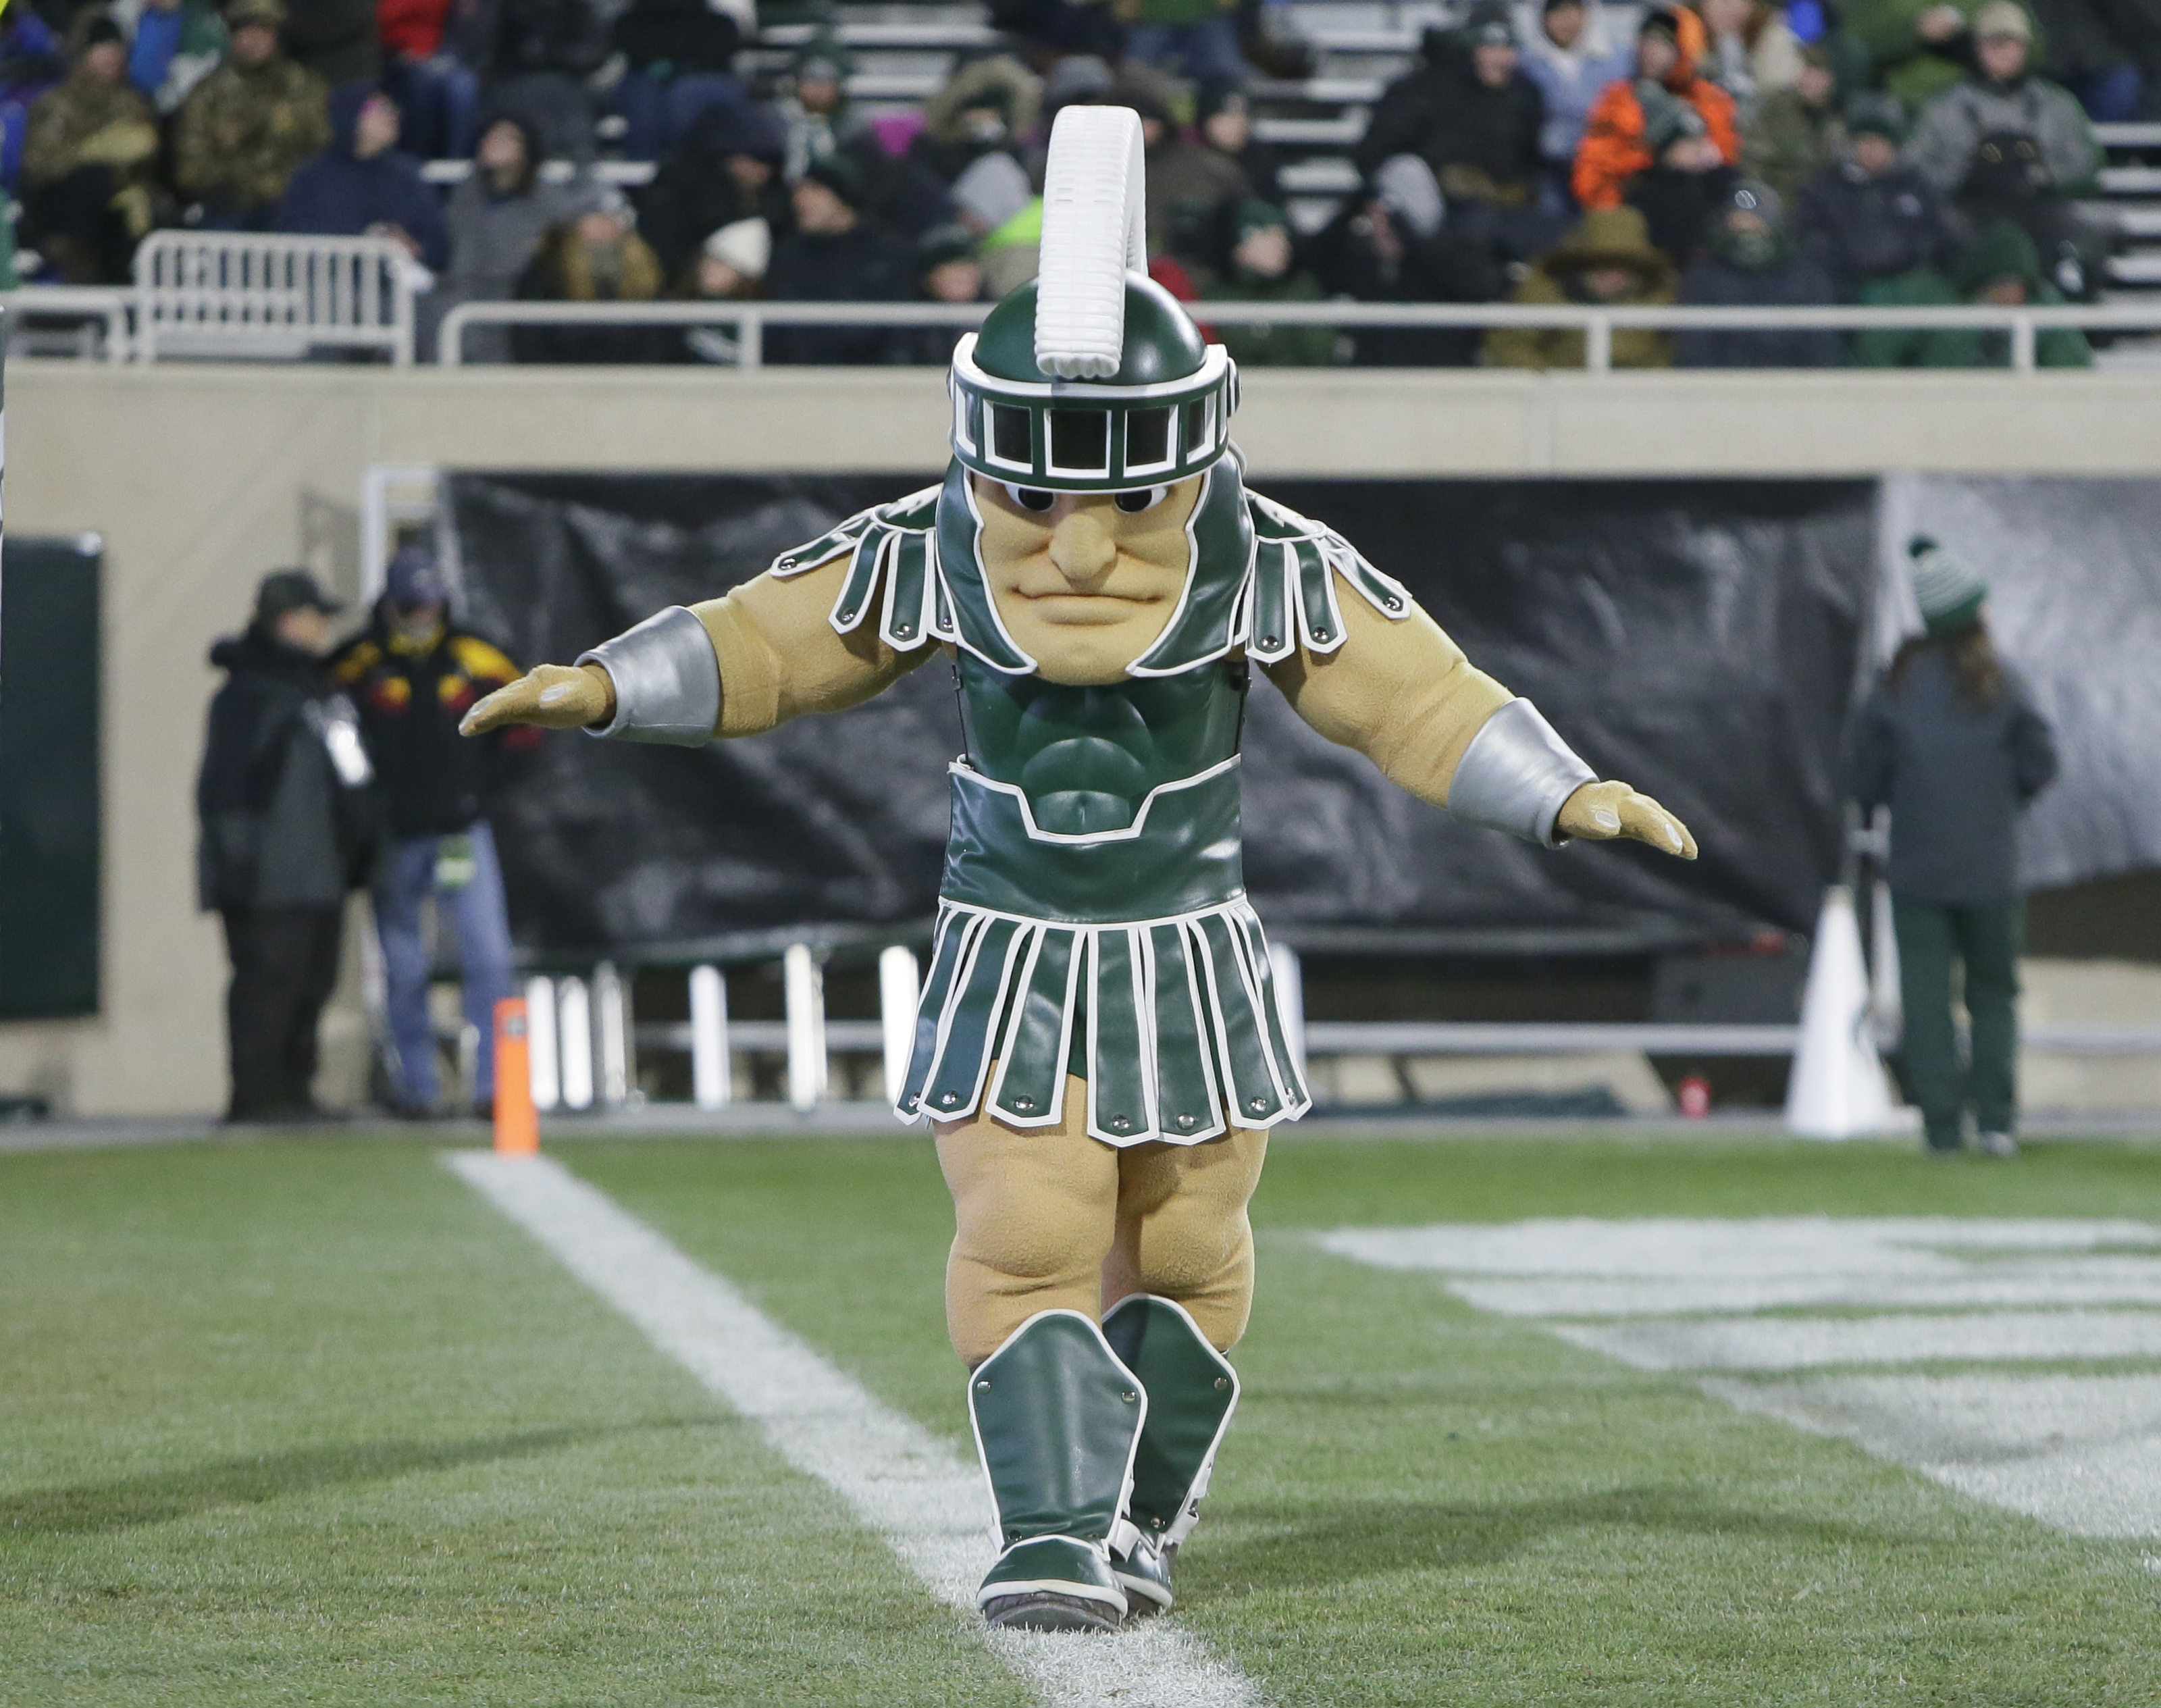 Michigan State Football: What are chances to land 4-star S Jaylen Reed?